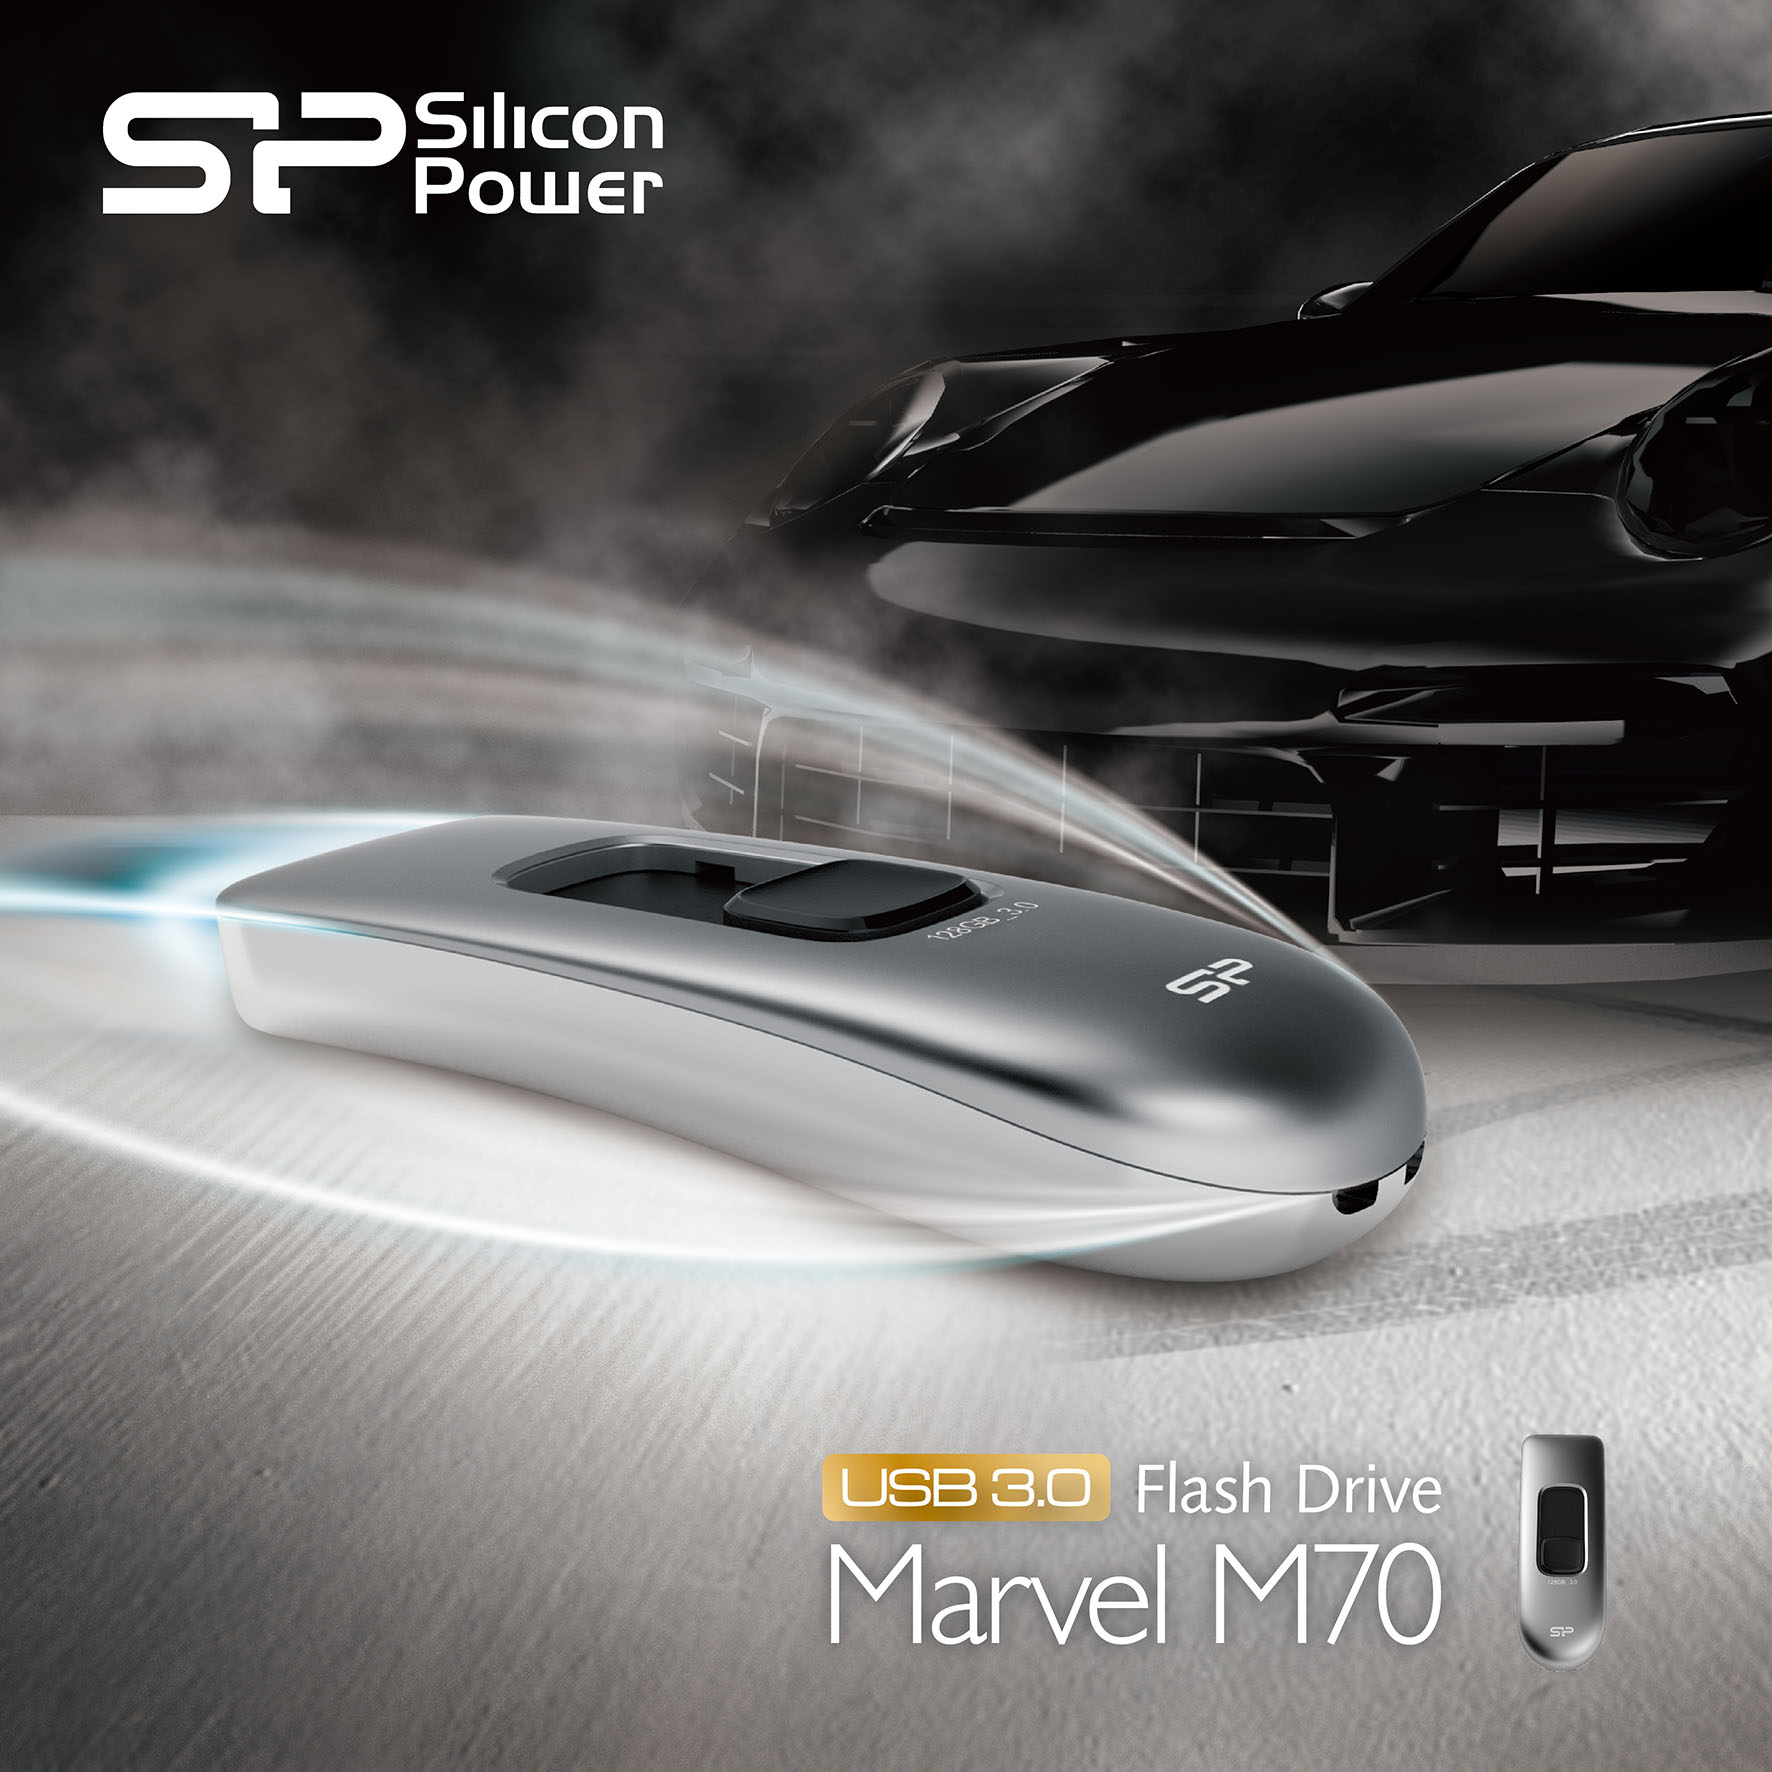 SP/ Silicon Power Releases the Ultra-fast USB 3.0 USB Flash Drive—Marvel M70